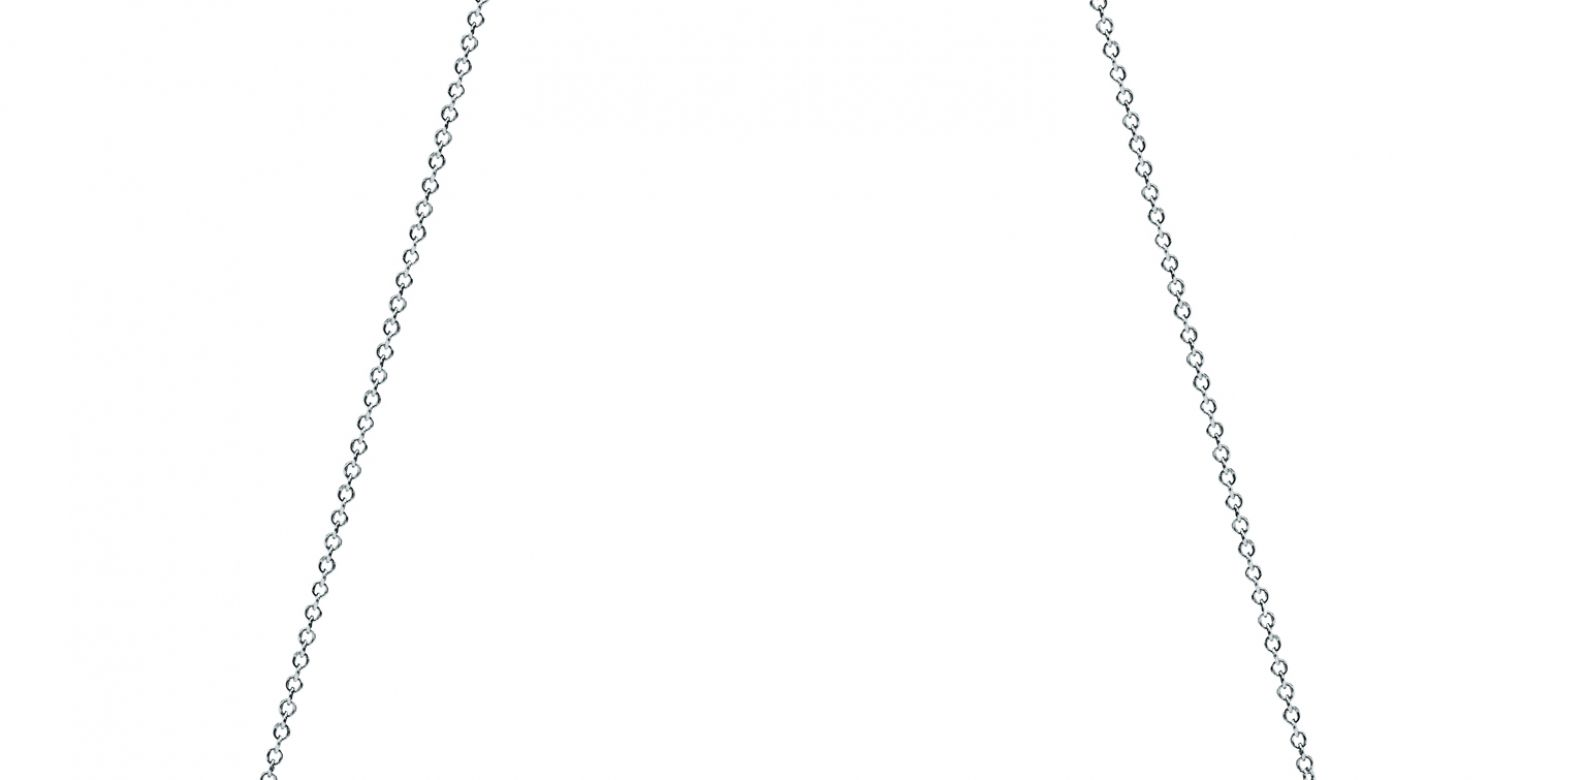 Smile necklace, Tiffany T collection